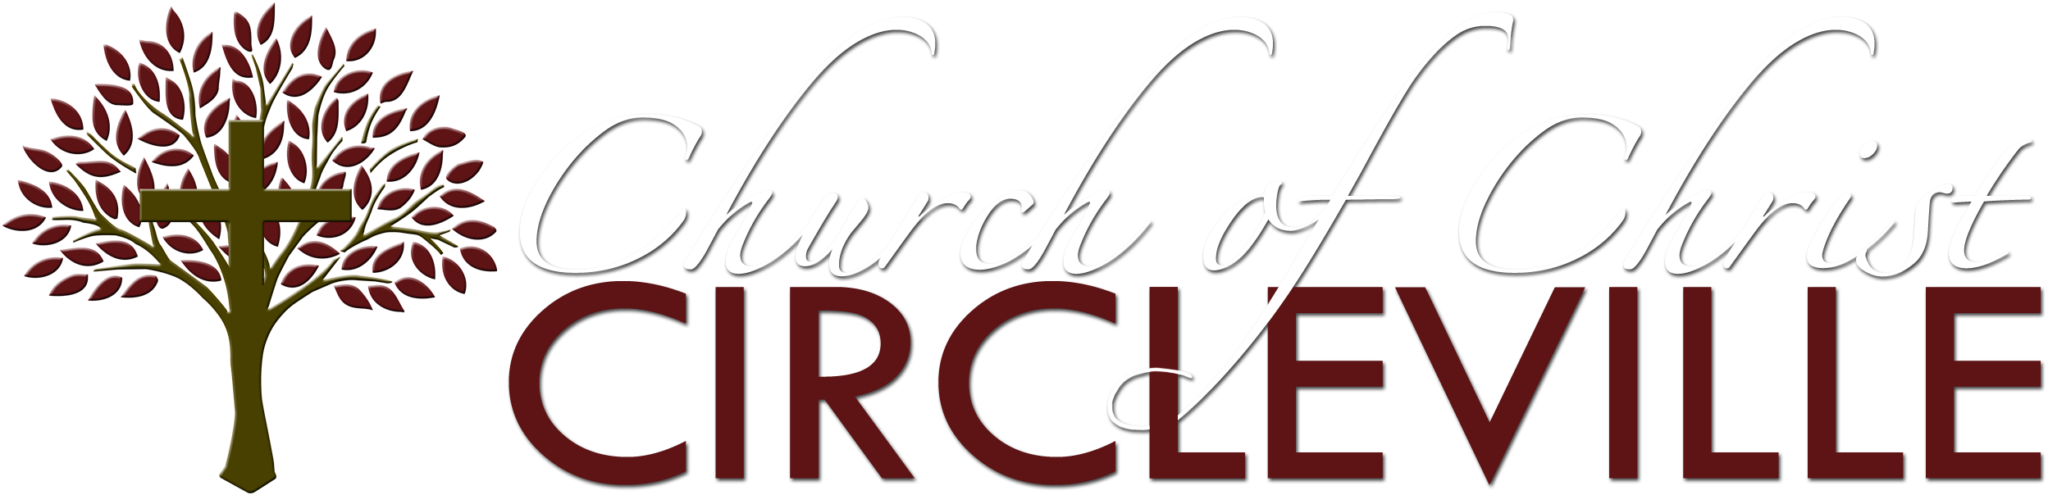 Circleville Church of Christ